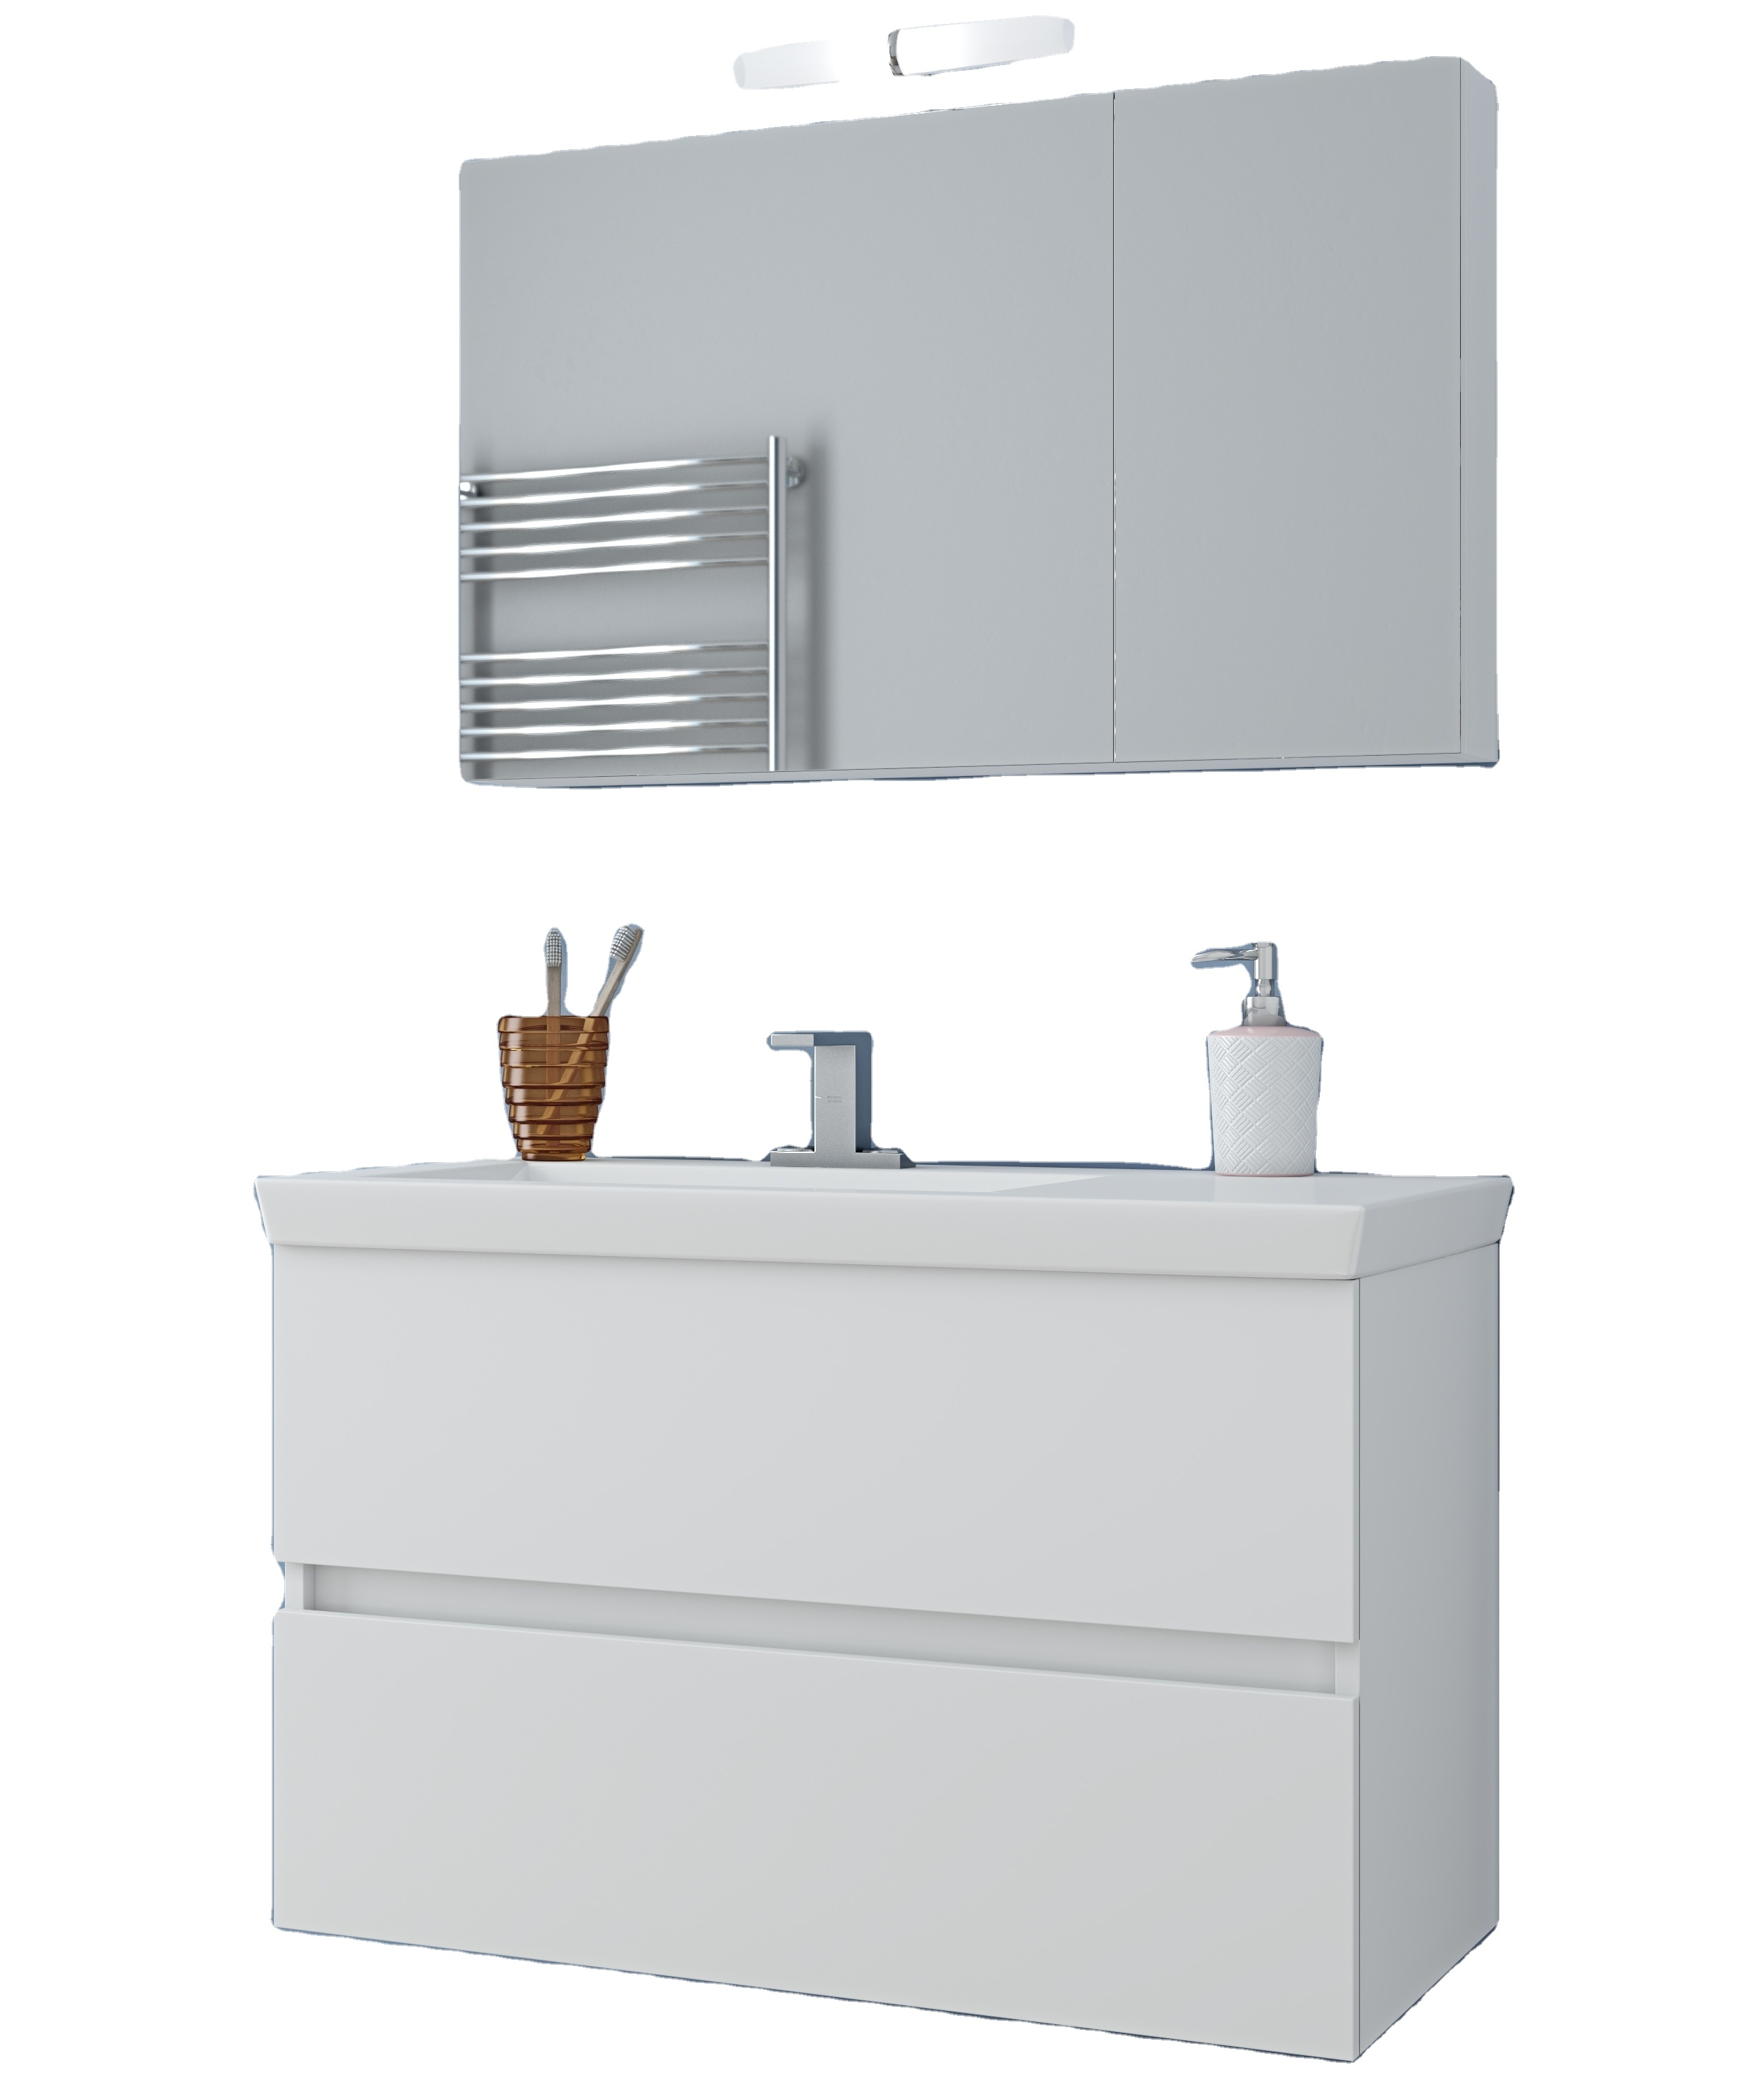 High Quality Small Modern White Lacquered Bathroom Vanity With Drawers Luxus 85 Buy Bathroom Vanity Set With Drawers Modern Minimal Vanity Modern Bathroom Vanity Product On Alibaba Com